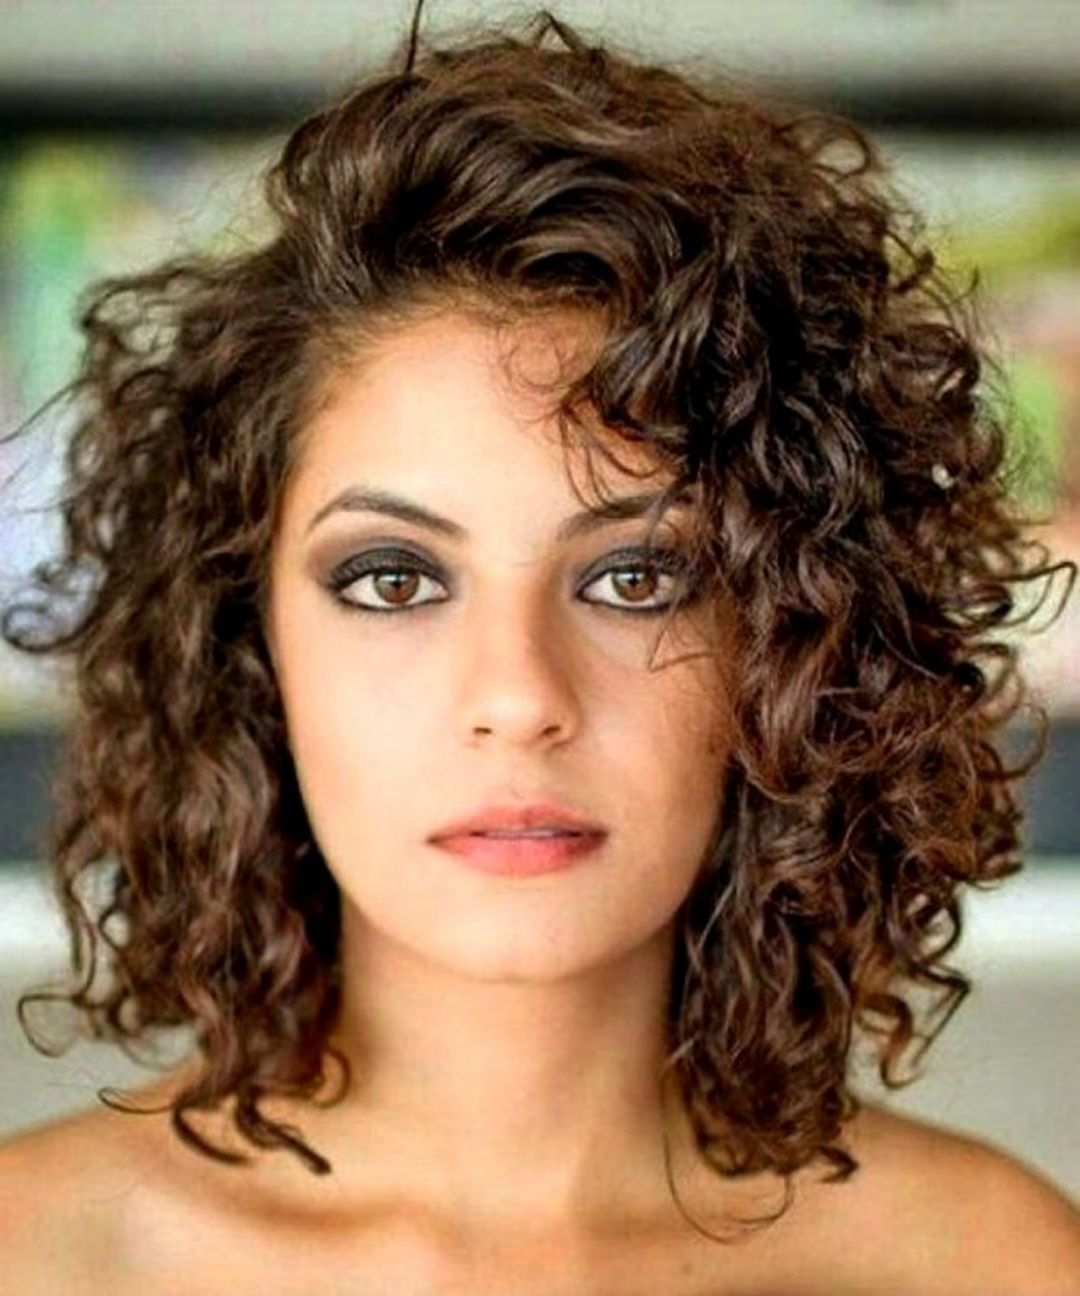 31+ Curly hairstyles short inspirations